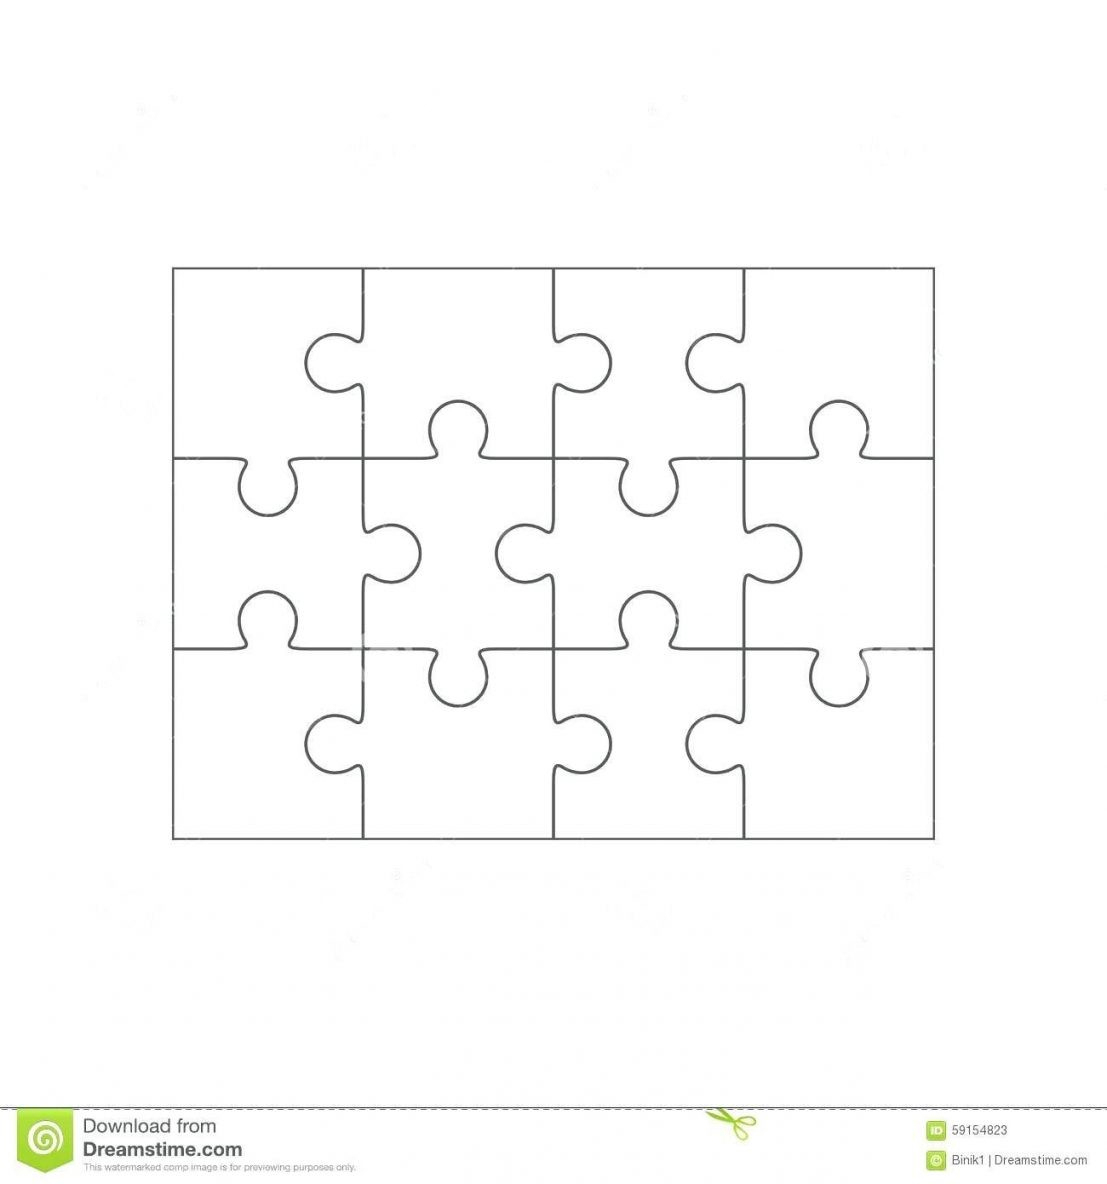 Crossword Puzzle Maker And Word Search Crosswords Printable Jigsaw - Printable Jigsaw Puzzle Generator